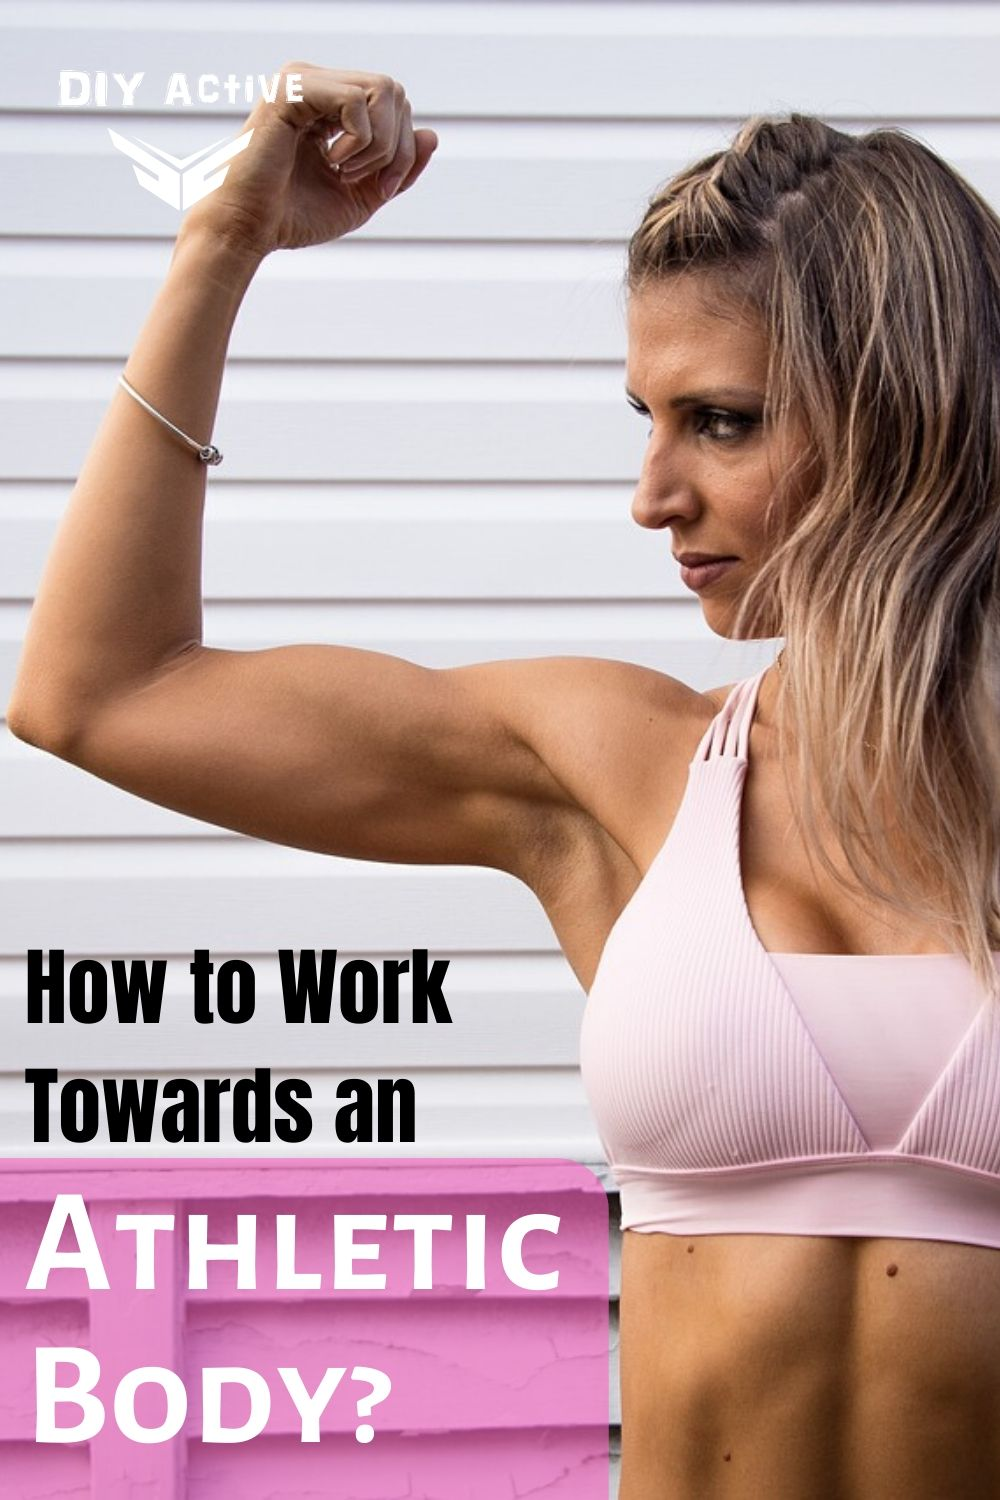 How to Work Towards an Athletic Body